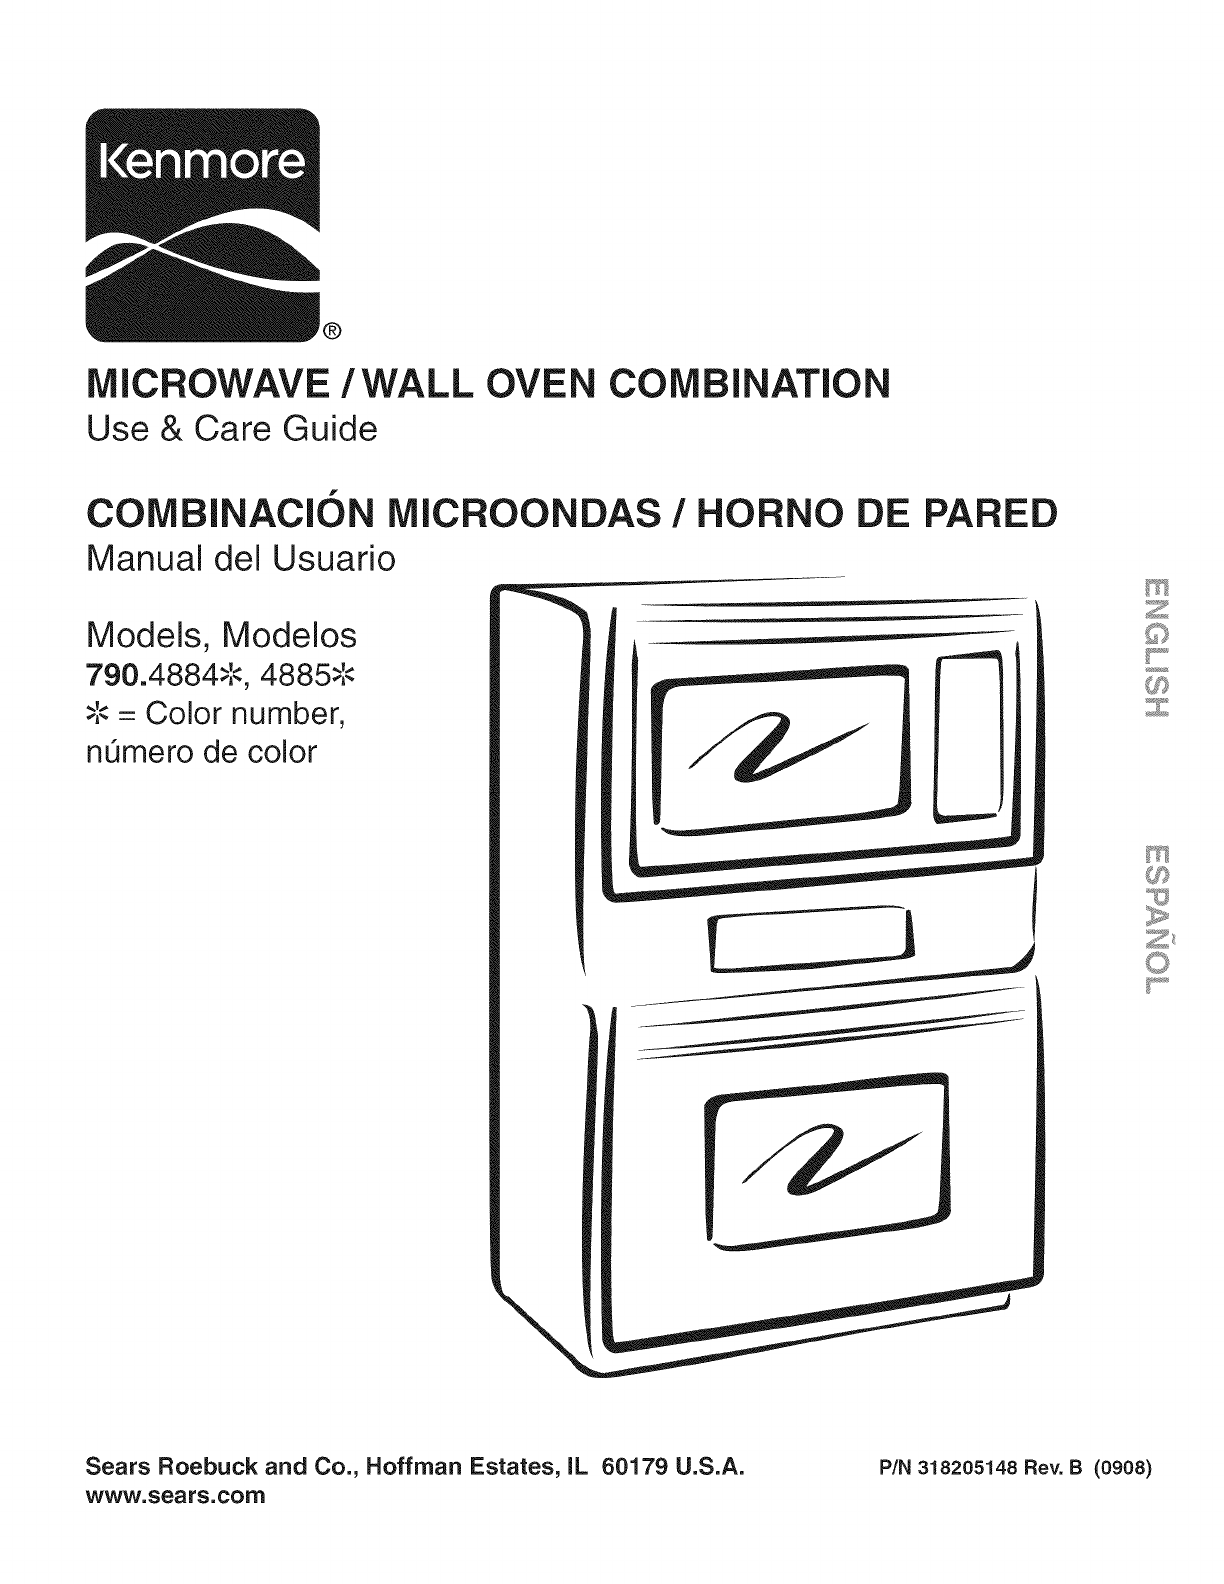 Microwave Wall Oven Combination